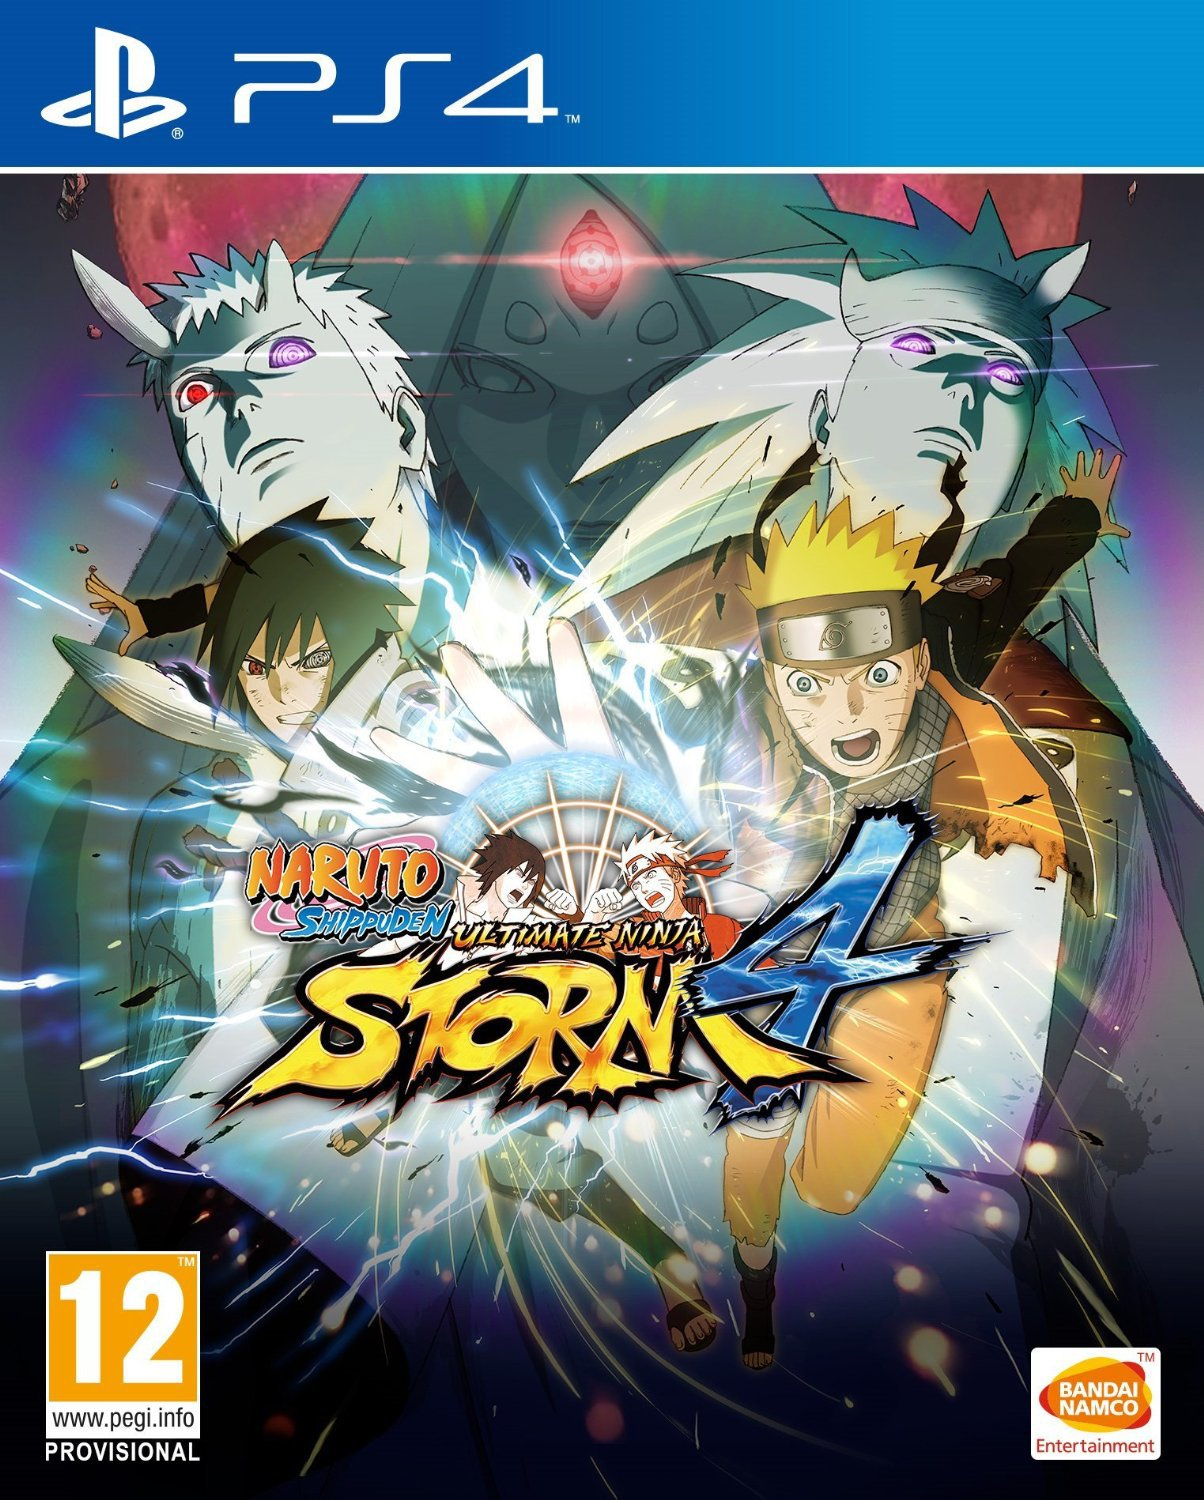 Image of Naruto Shippuden - PS4 Game.